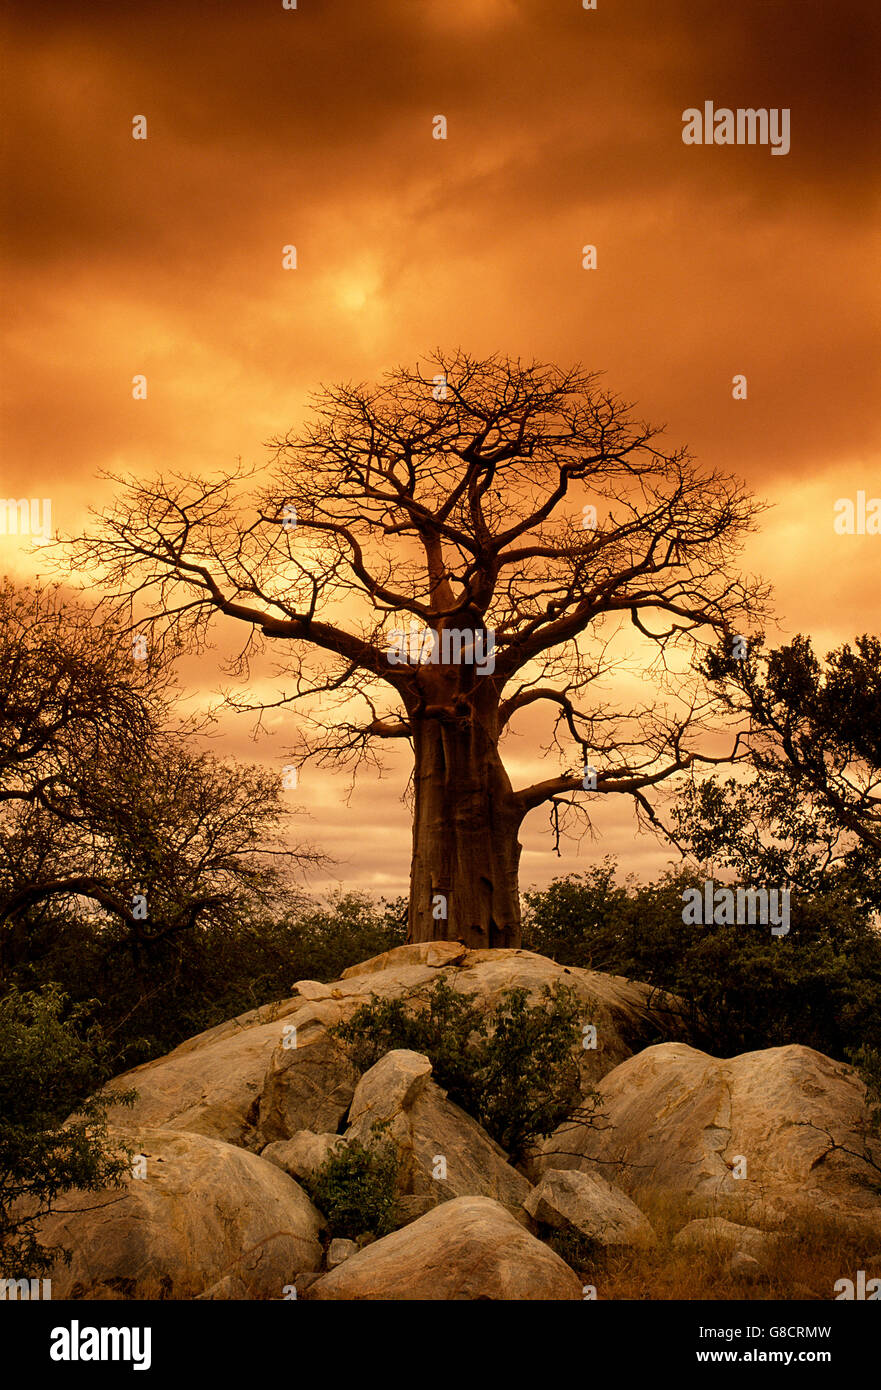 Baobab tree under golden orange overcast sky, South Africa. - Stock Image